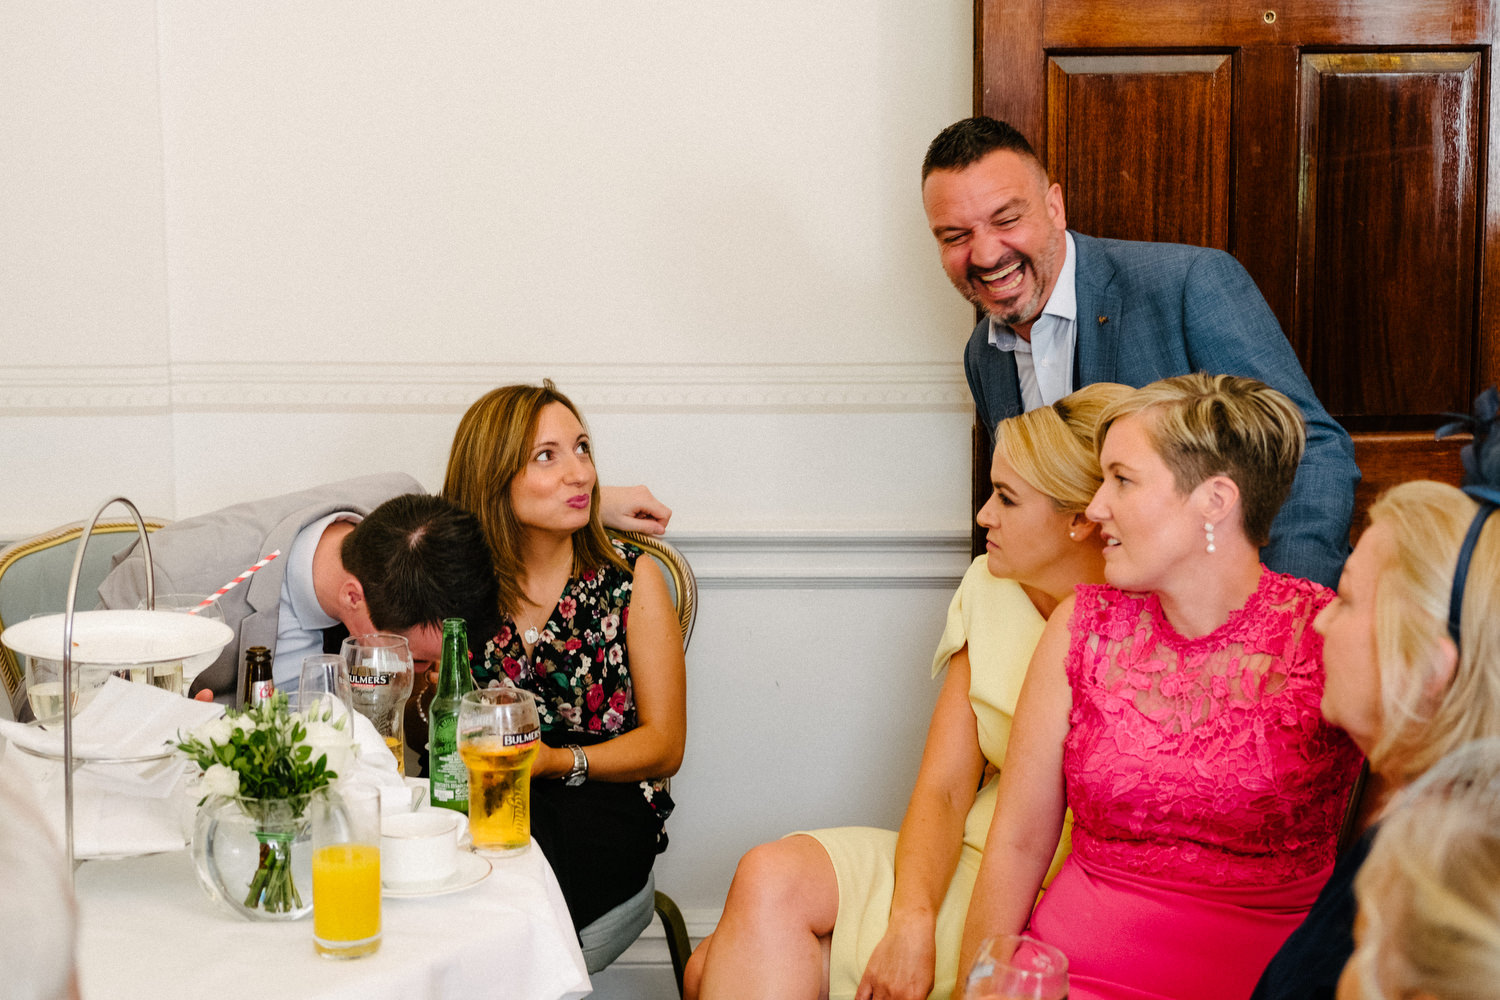 dmp0442_photographer_wedding_dublin_david_mcclelland_candid_photography_fujifilm_shelbourne_reception_documentary